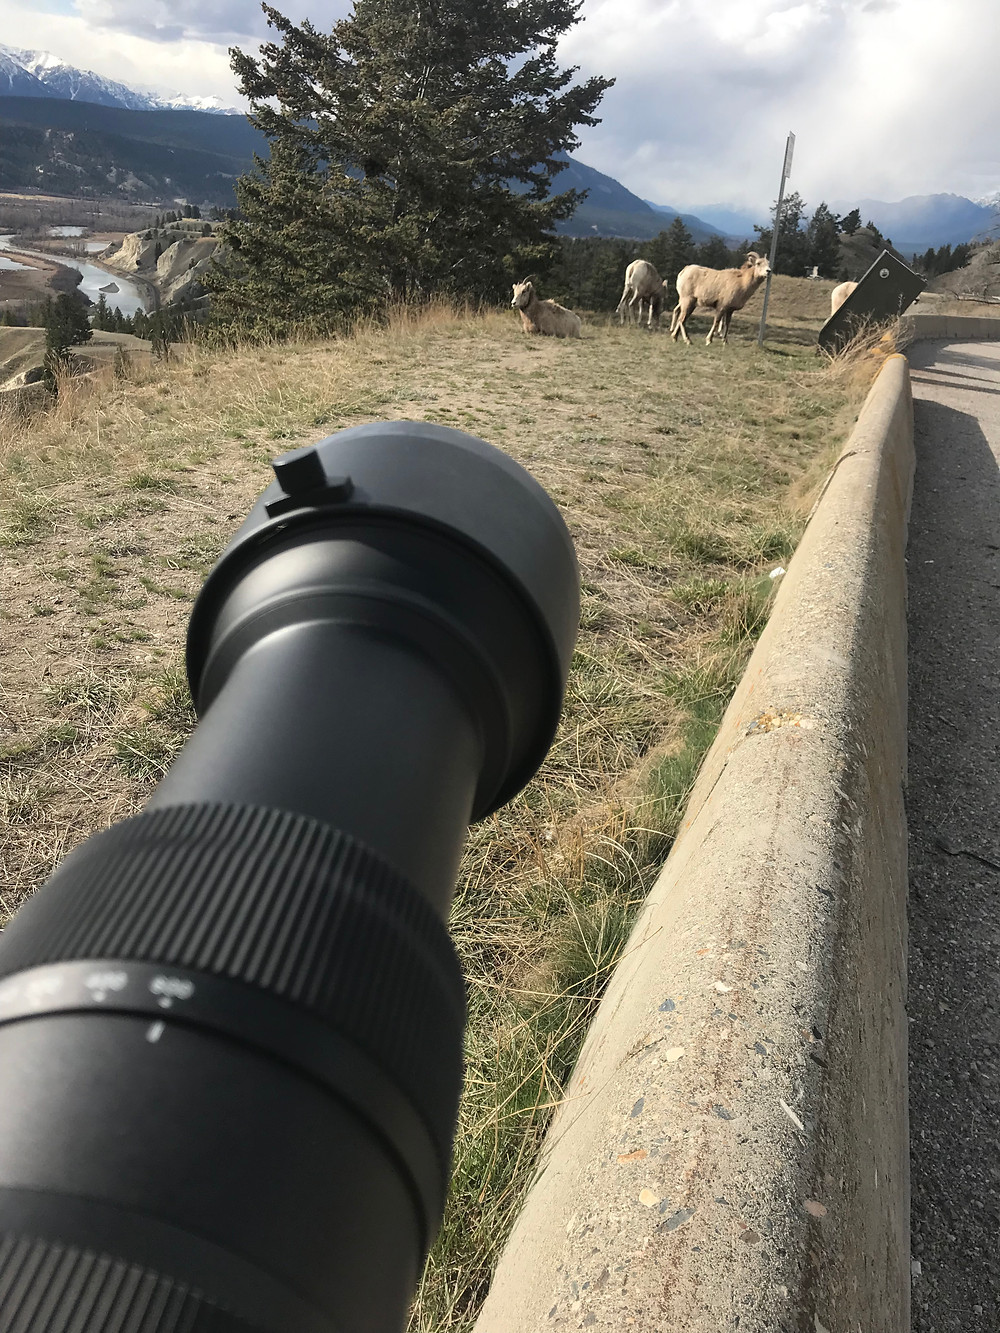 Sigma 60-600 in wildlife photography action